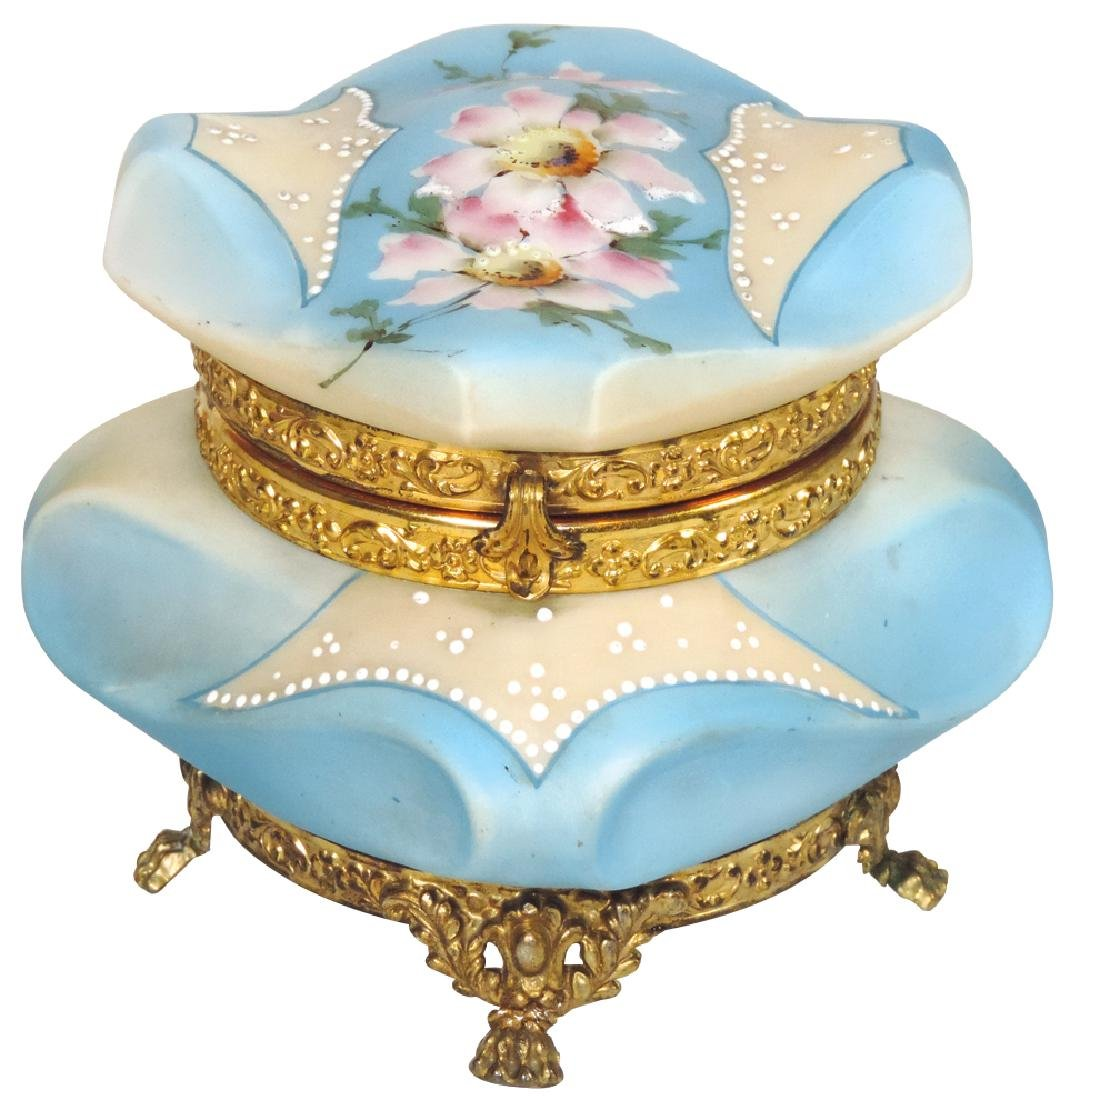 Dresser box, C.F. Monroe Nakara, footed powder blue